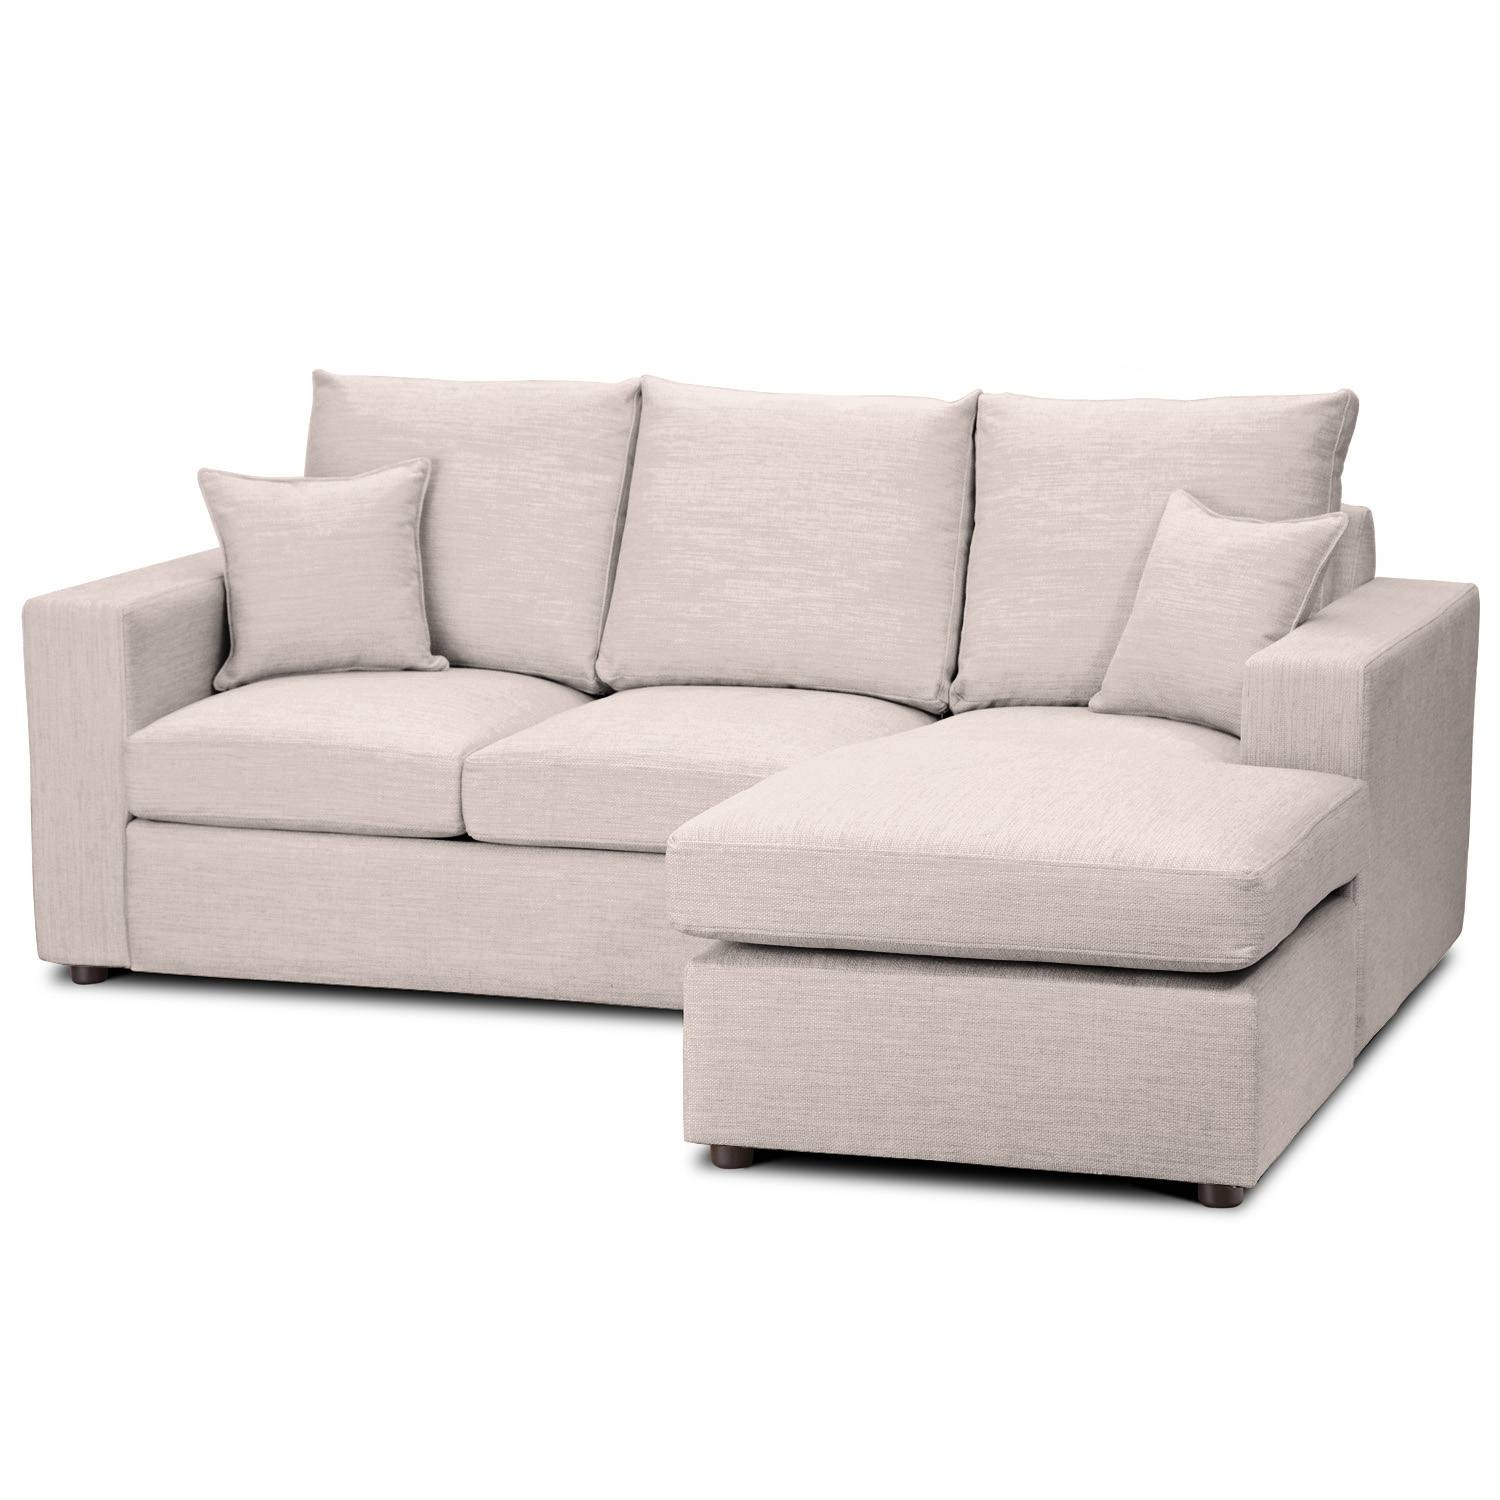 Sofas: Classic Meets Contemporary Chaise Sofa Bed For Ideal Living Pertaining To Cushion Sofa Beds (View 27 of 30)